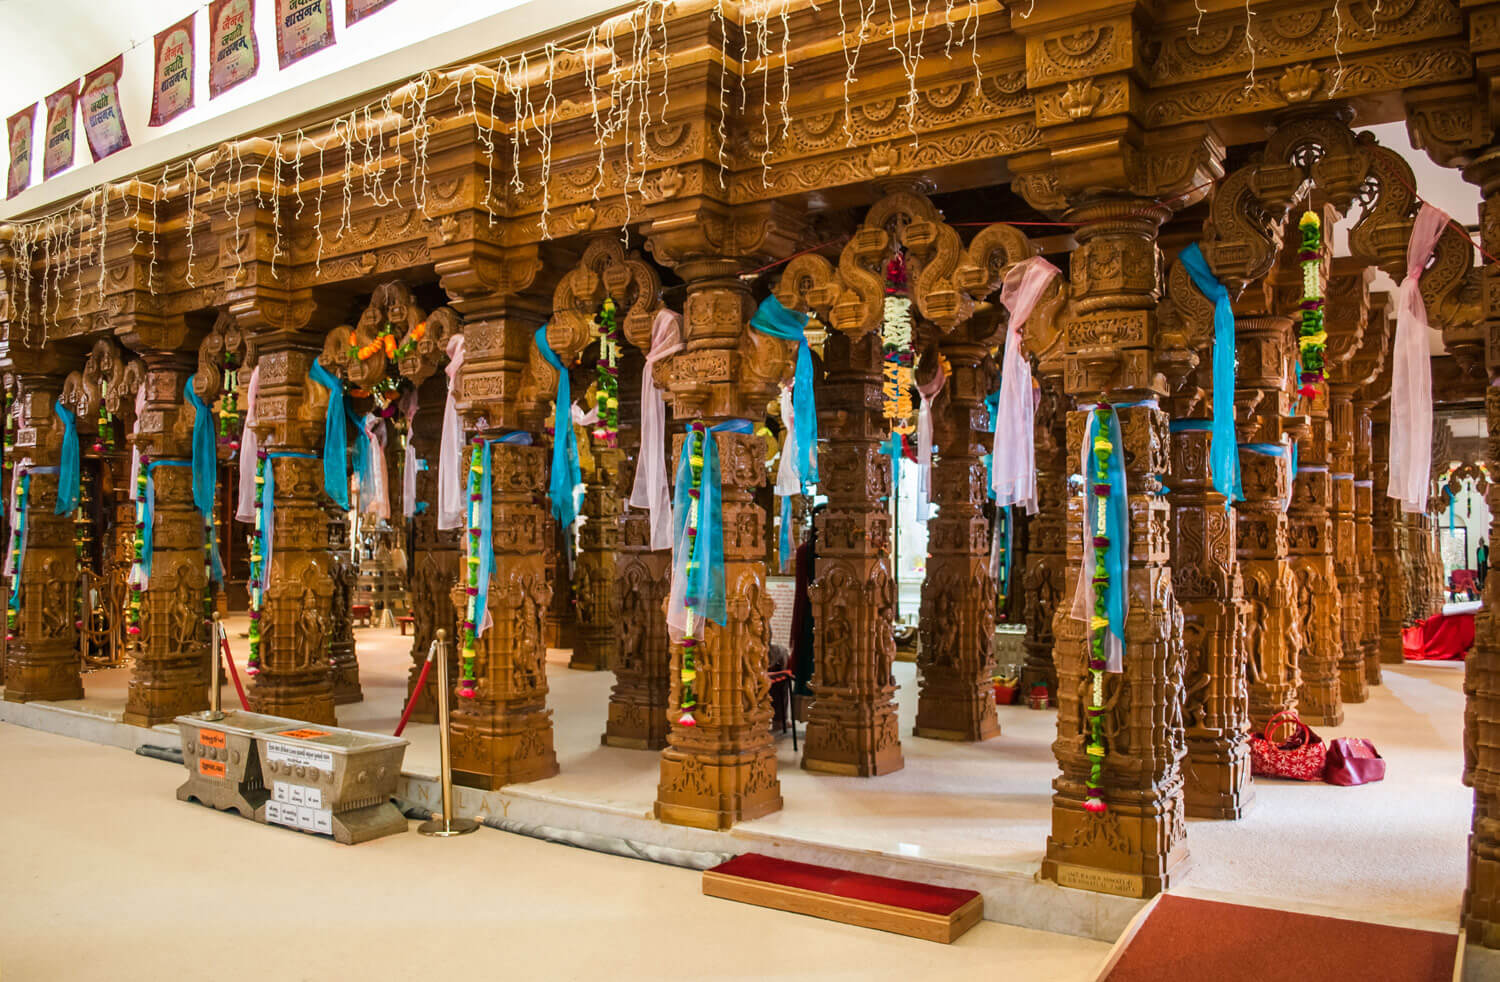 Carved stone pillars that make up the Garbhagriha (inner sanctum) -